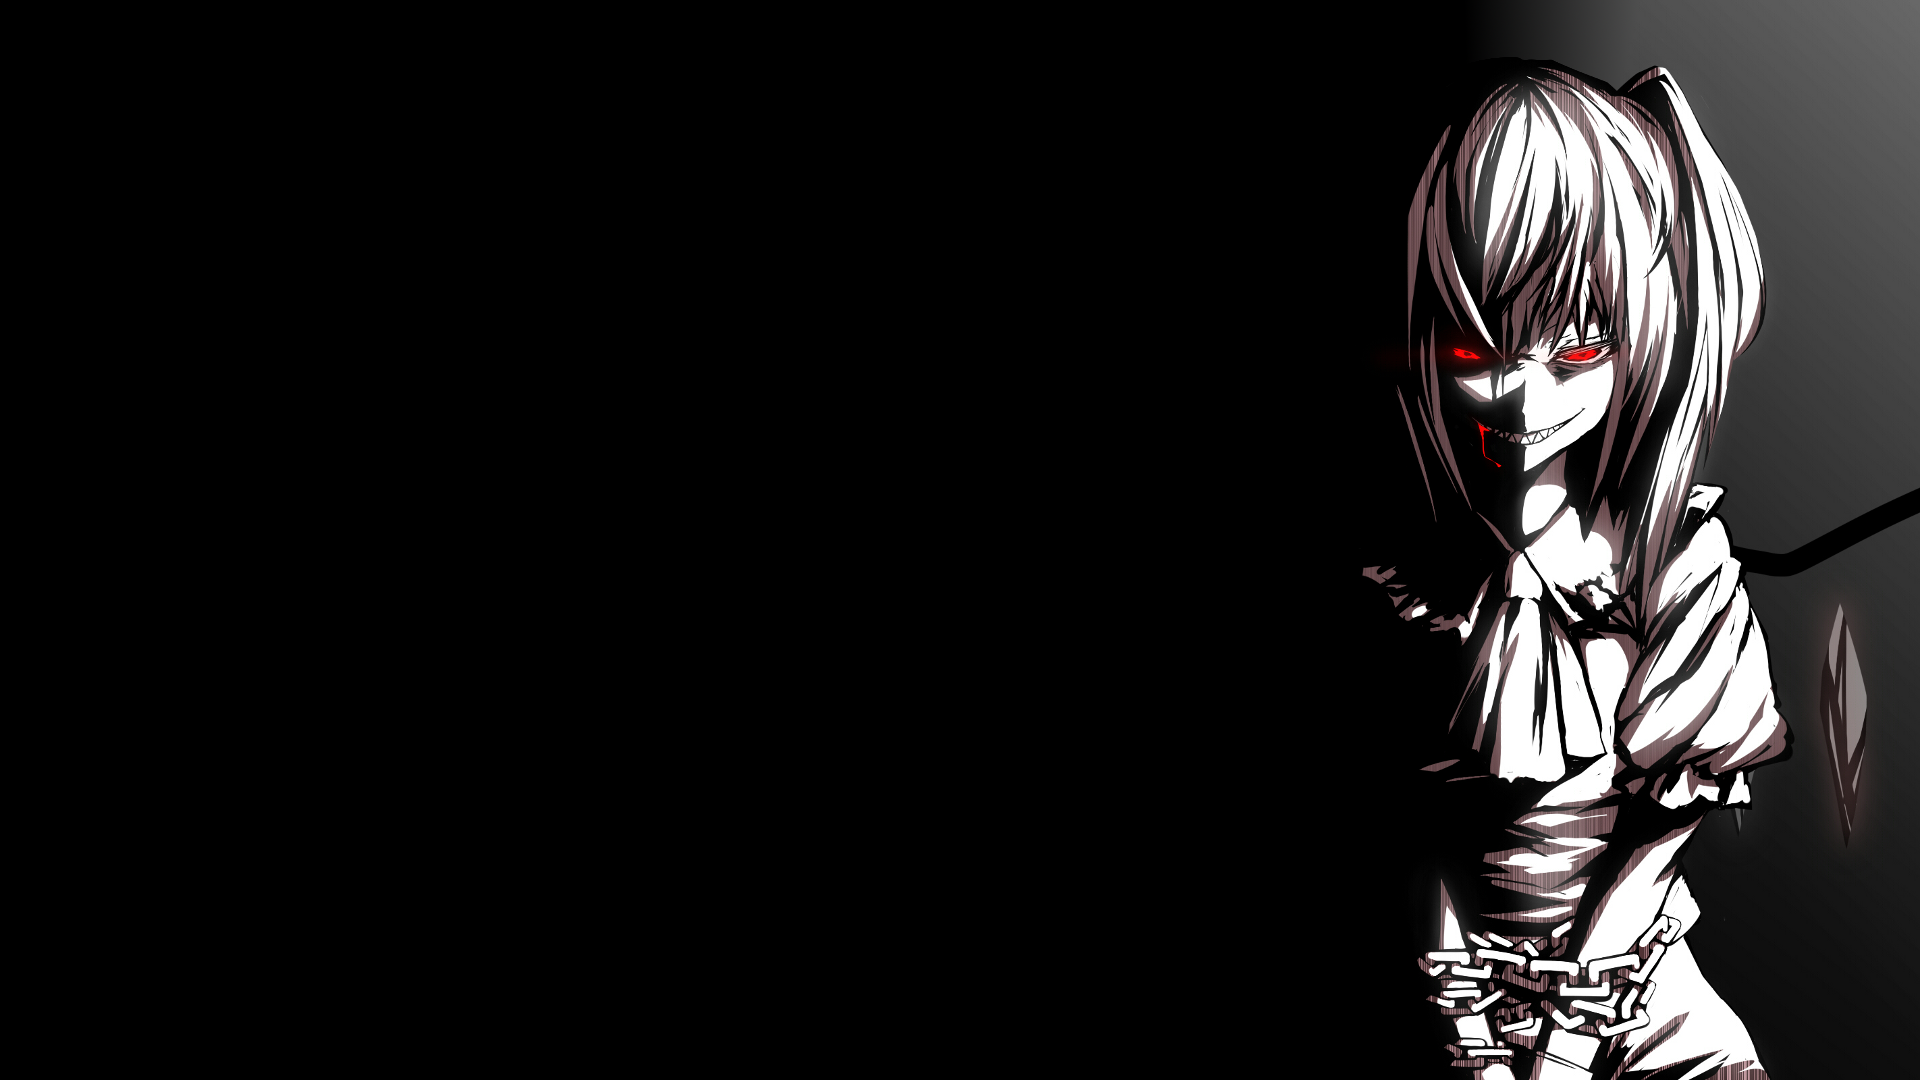 Anime wallpapers for facebook full hd pictures - Anime wallpaper full hd ...